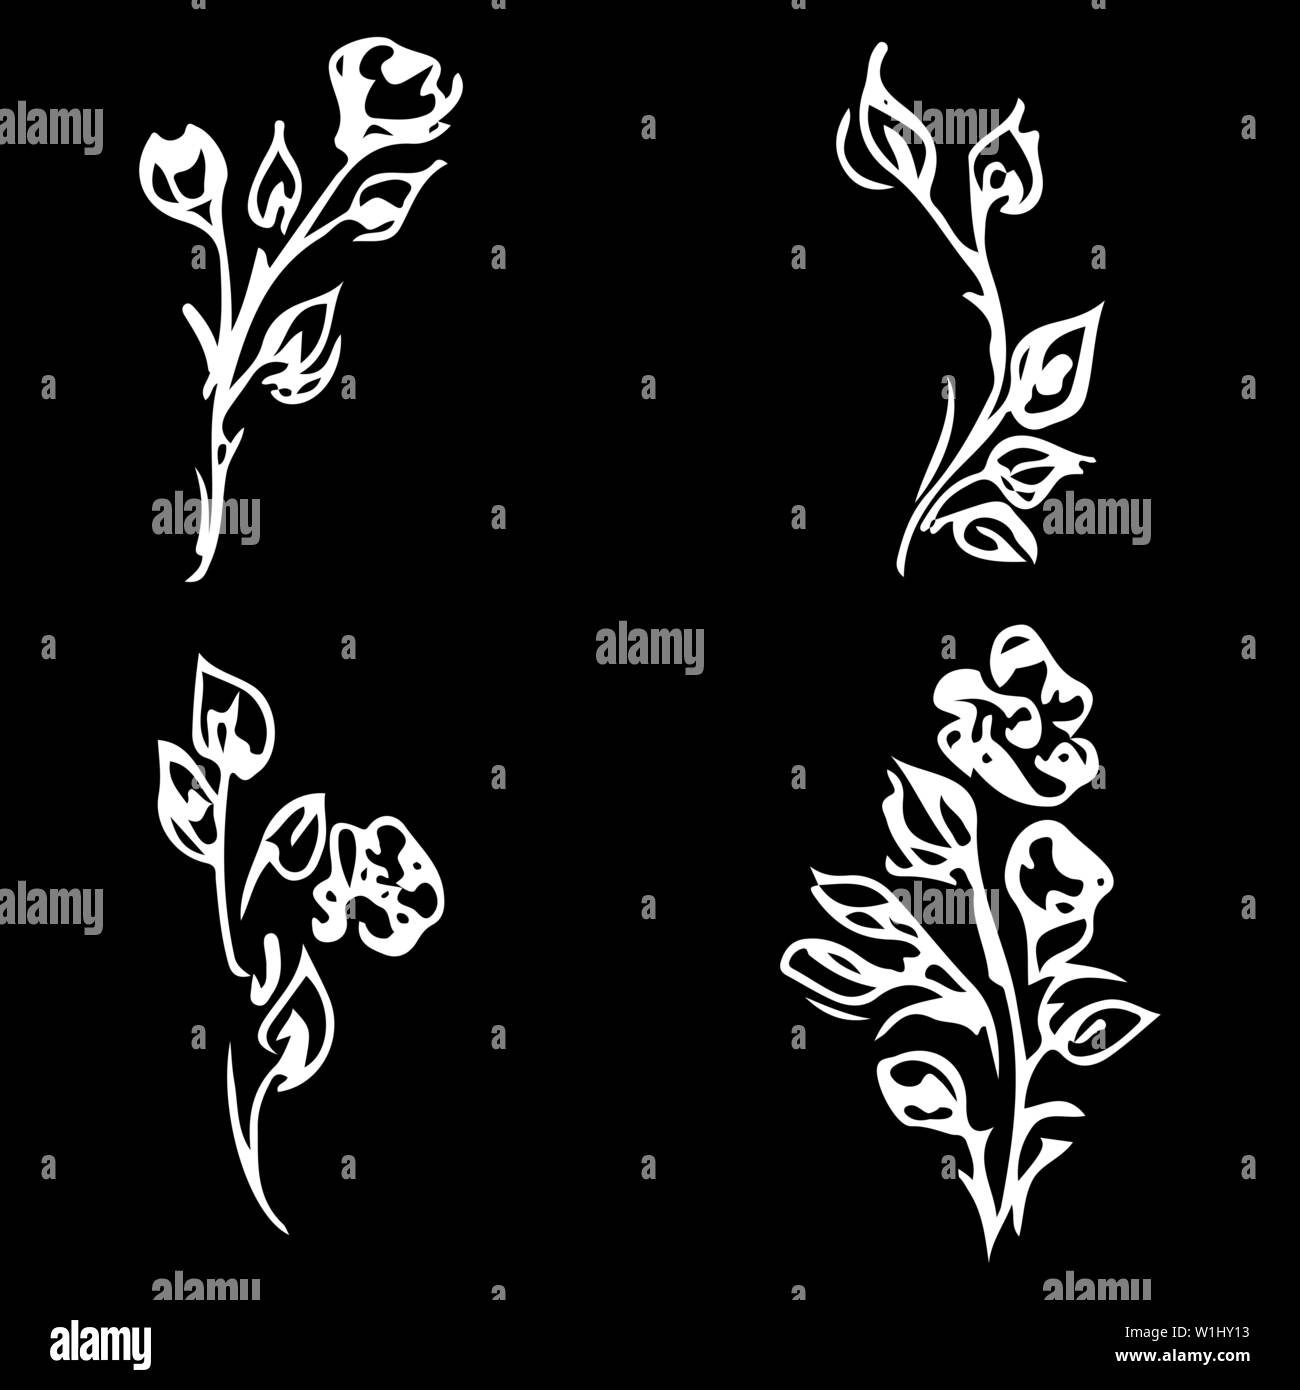 Flowers and branches isolated on black background. Hand drawn doodle collection. 4 floral graphic elements. Big vector set. Outline floral logotypes. Stock Vector